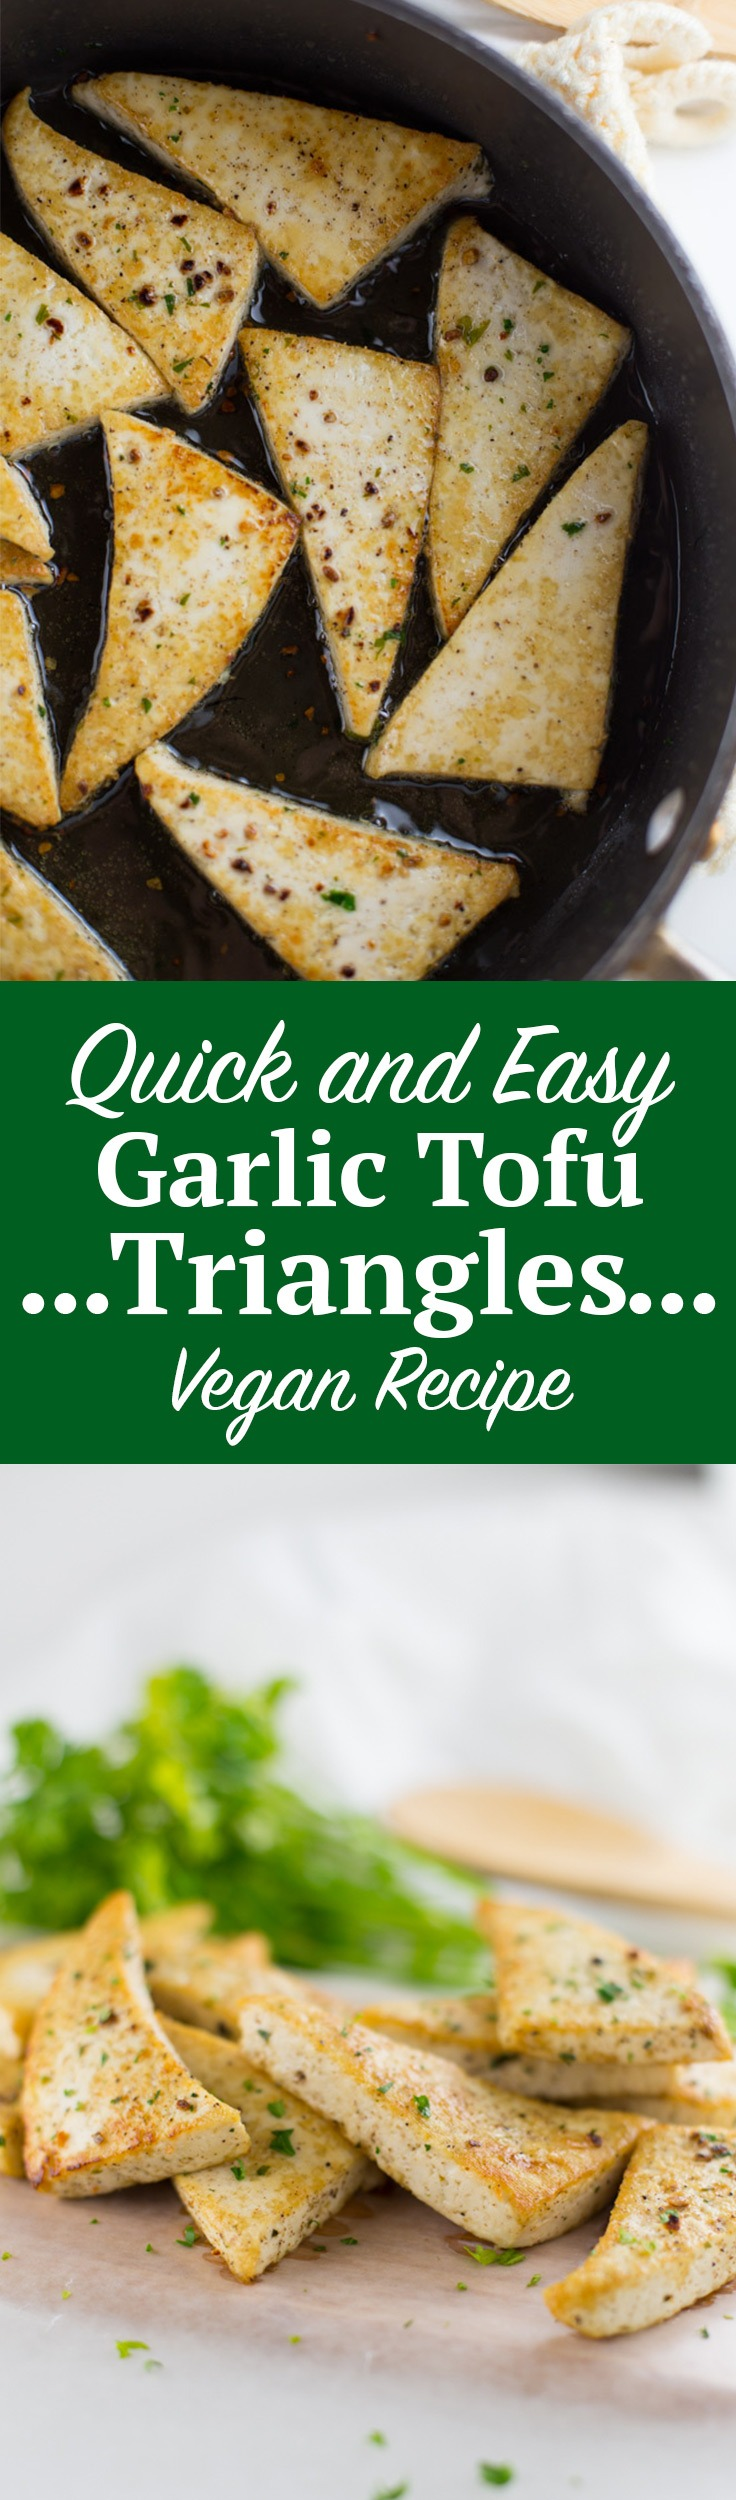 Quick and Easy Garlic Tofu Triangles (Vegan Recipe). Looking for a quick dinner recipe? How about a healthy dinner recipe? Check out these vegan garlic tofu triangles! Click through for the full recipe | www.seasonlycreations.com | @SeasonlyBlog